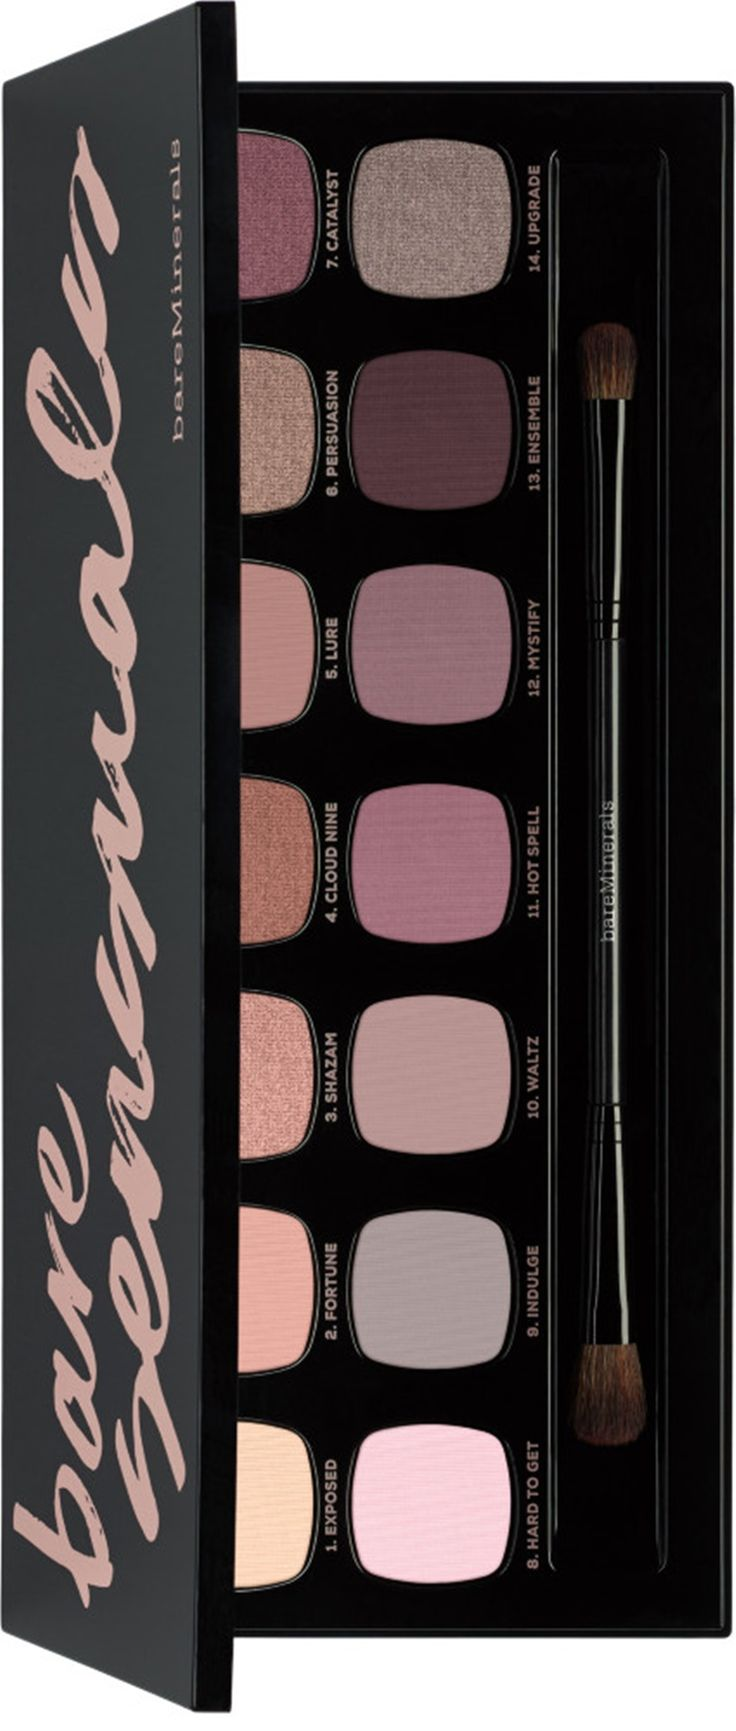 Bare Minerals The Bare Sensuals is a new 14.0 Ready Eyeshadow Palette arriving f...